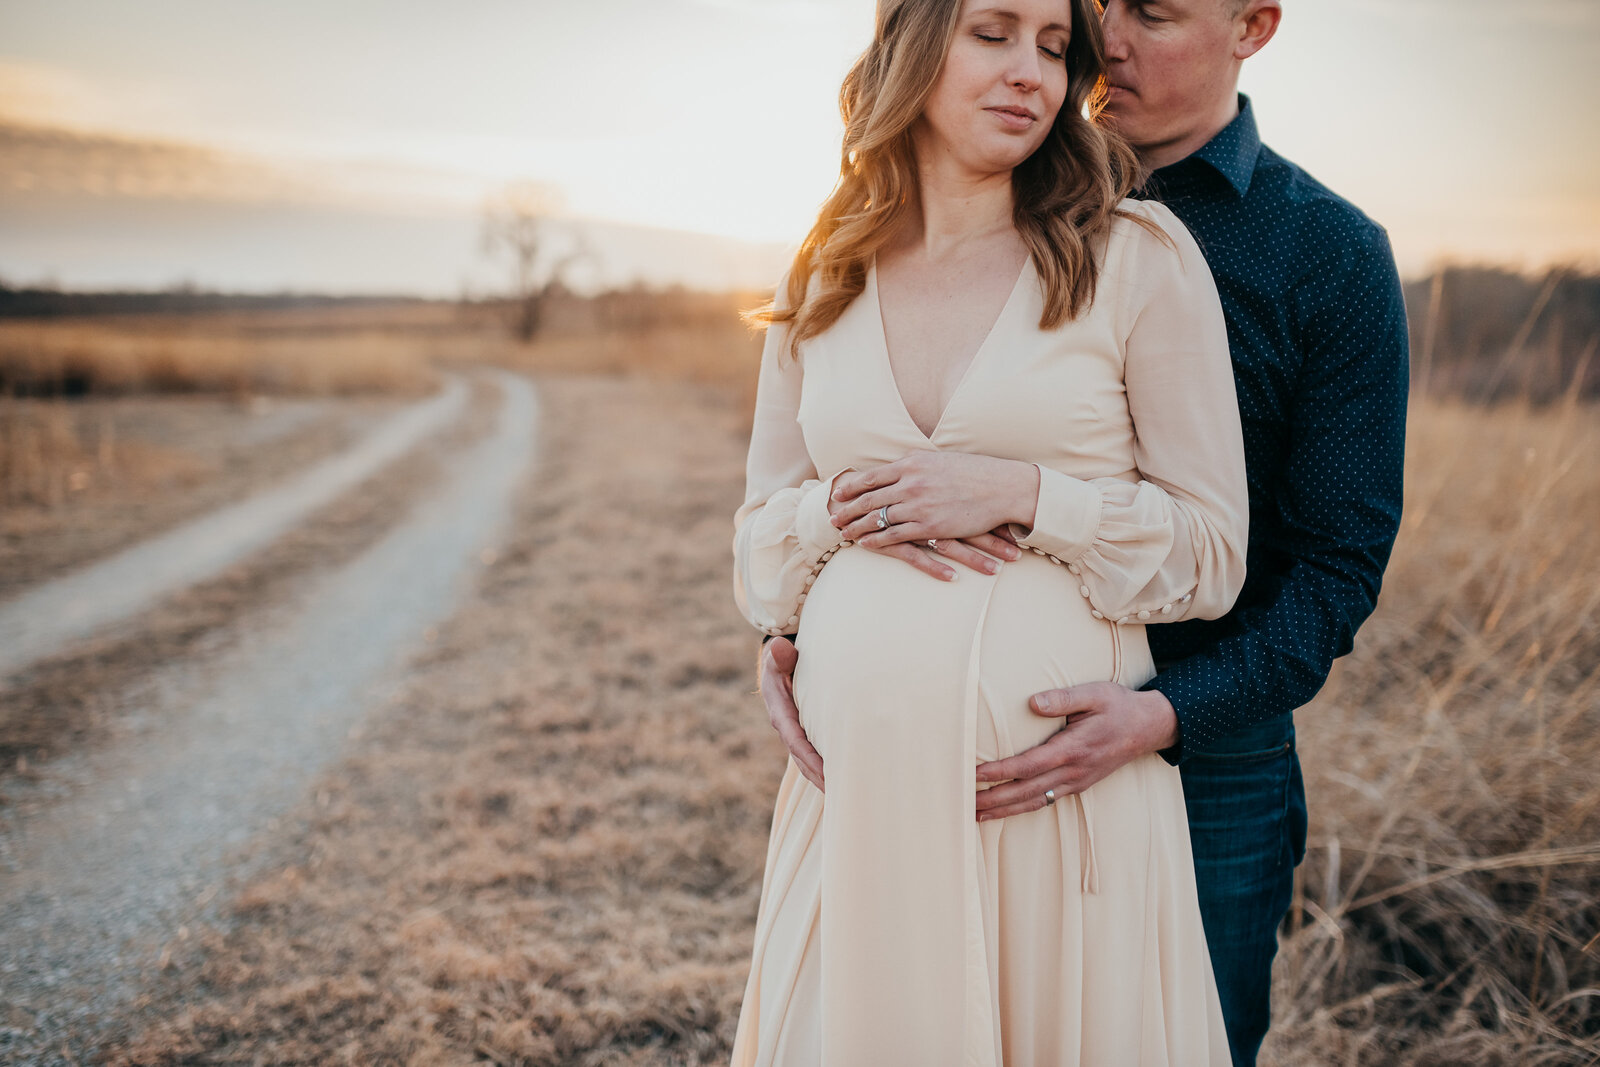 St-Louis-Maternity-Photographer-DSC_0733